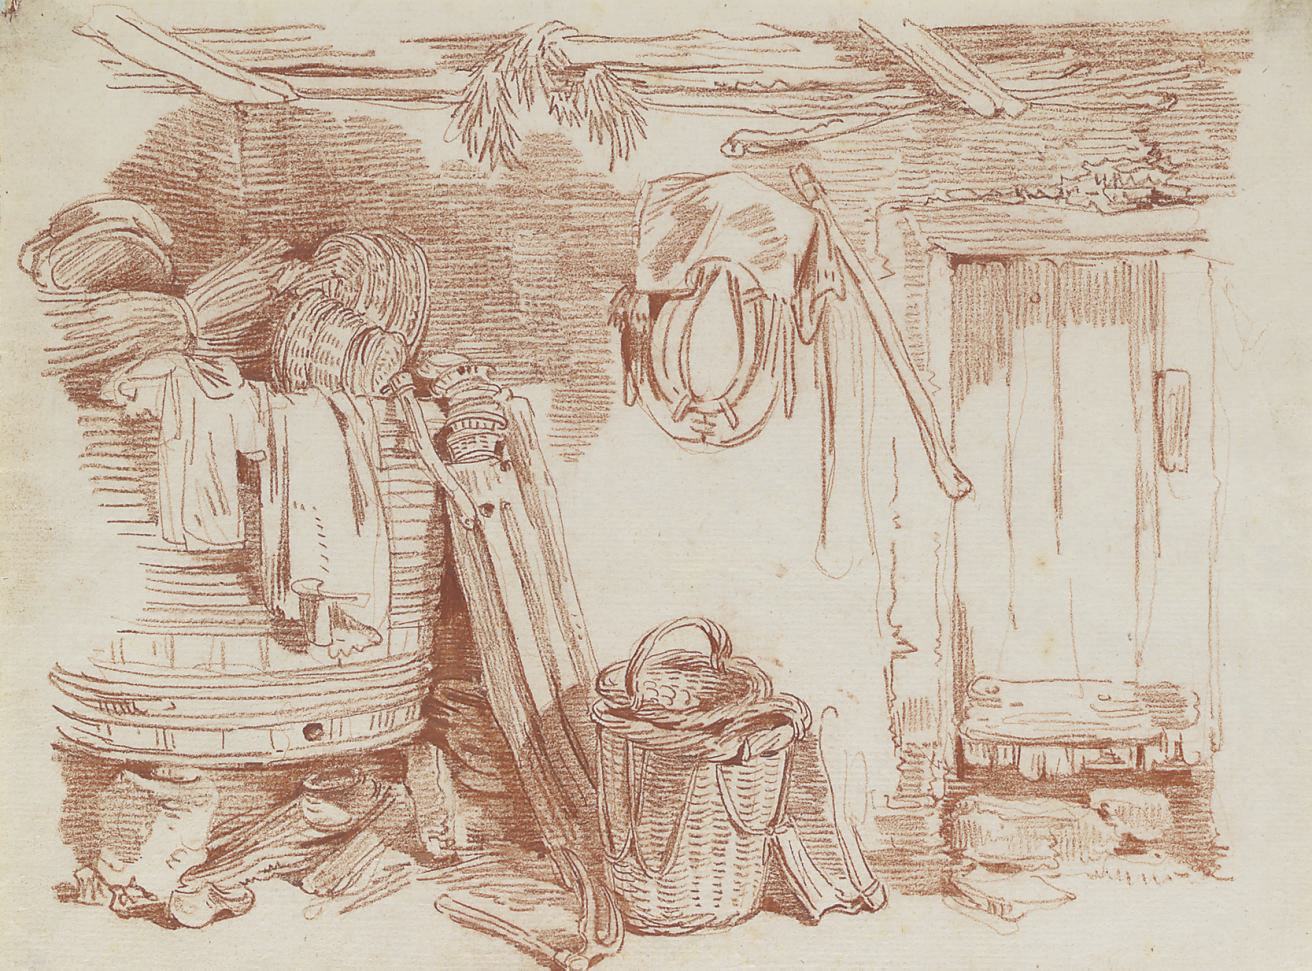 The interior of a shed with a large barrel, baskets and farm equipment